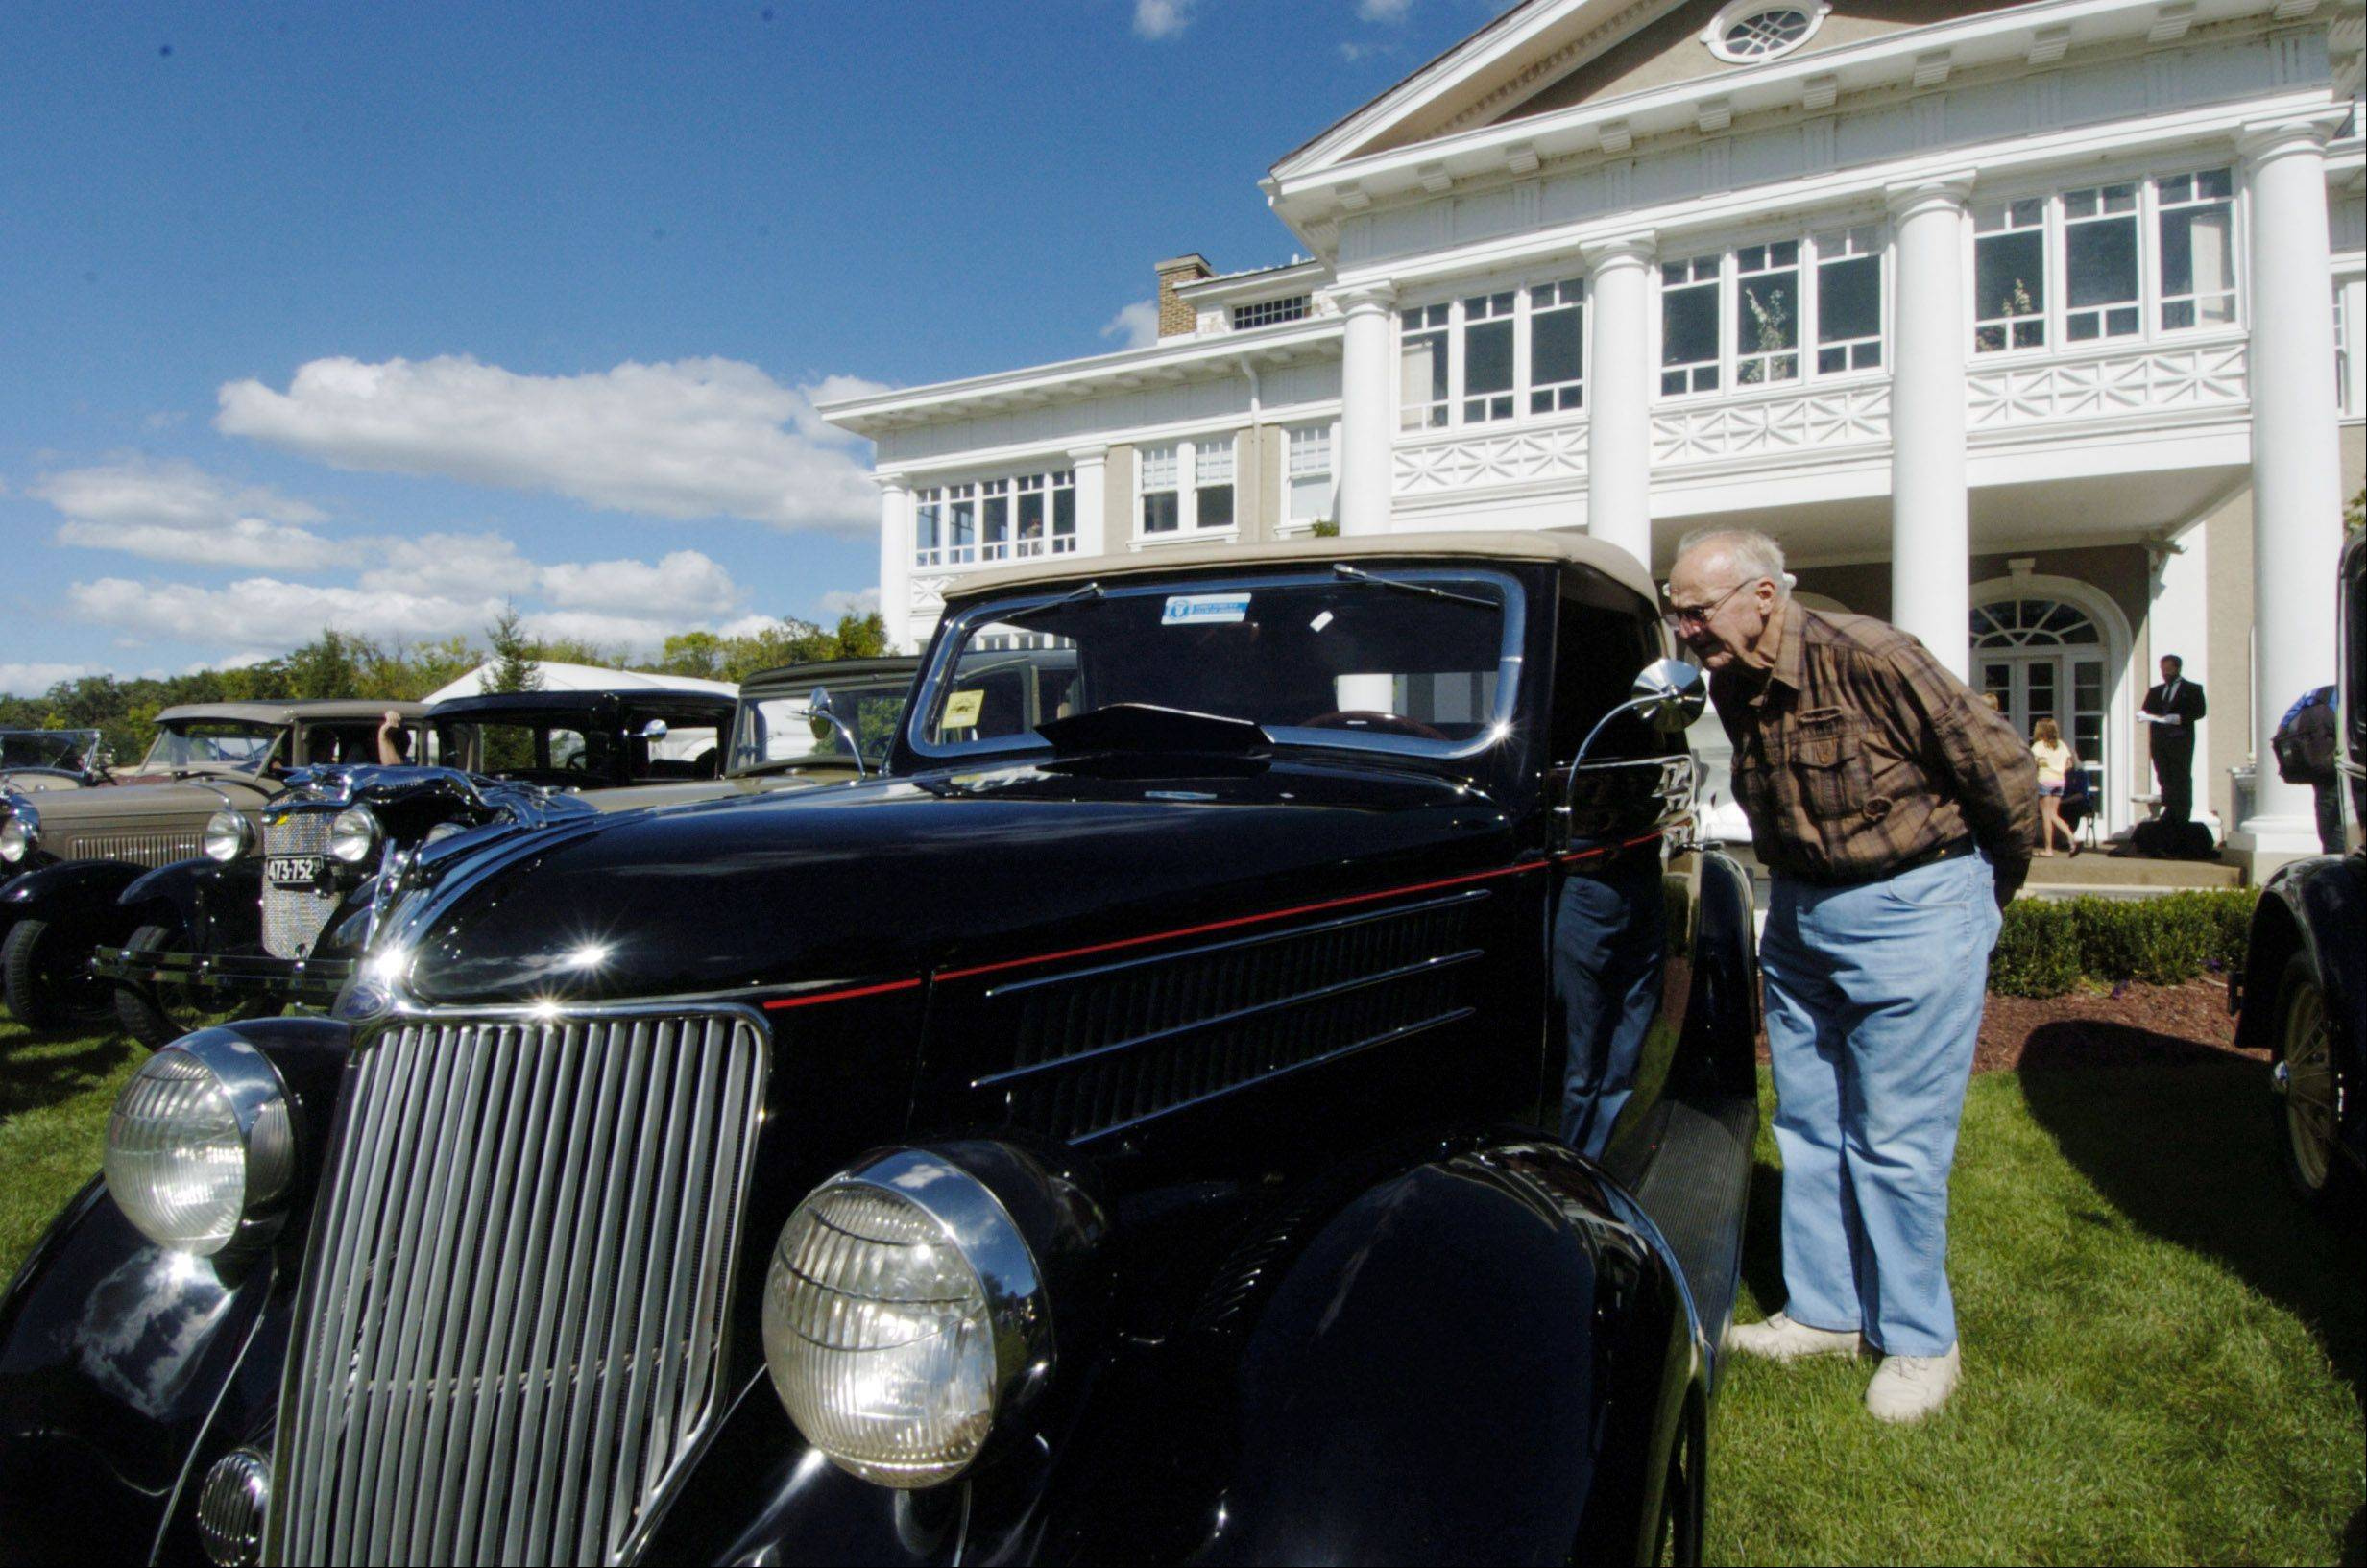 Ron Waltz, of Lake Villa, takes a peek inside a 1936 Ford on display during the 100th anniversary celebration of the Lehmann Mansion in Lake Villa Sunday.